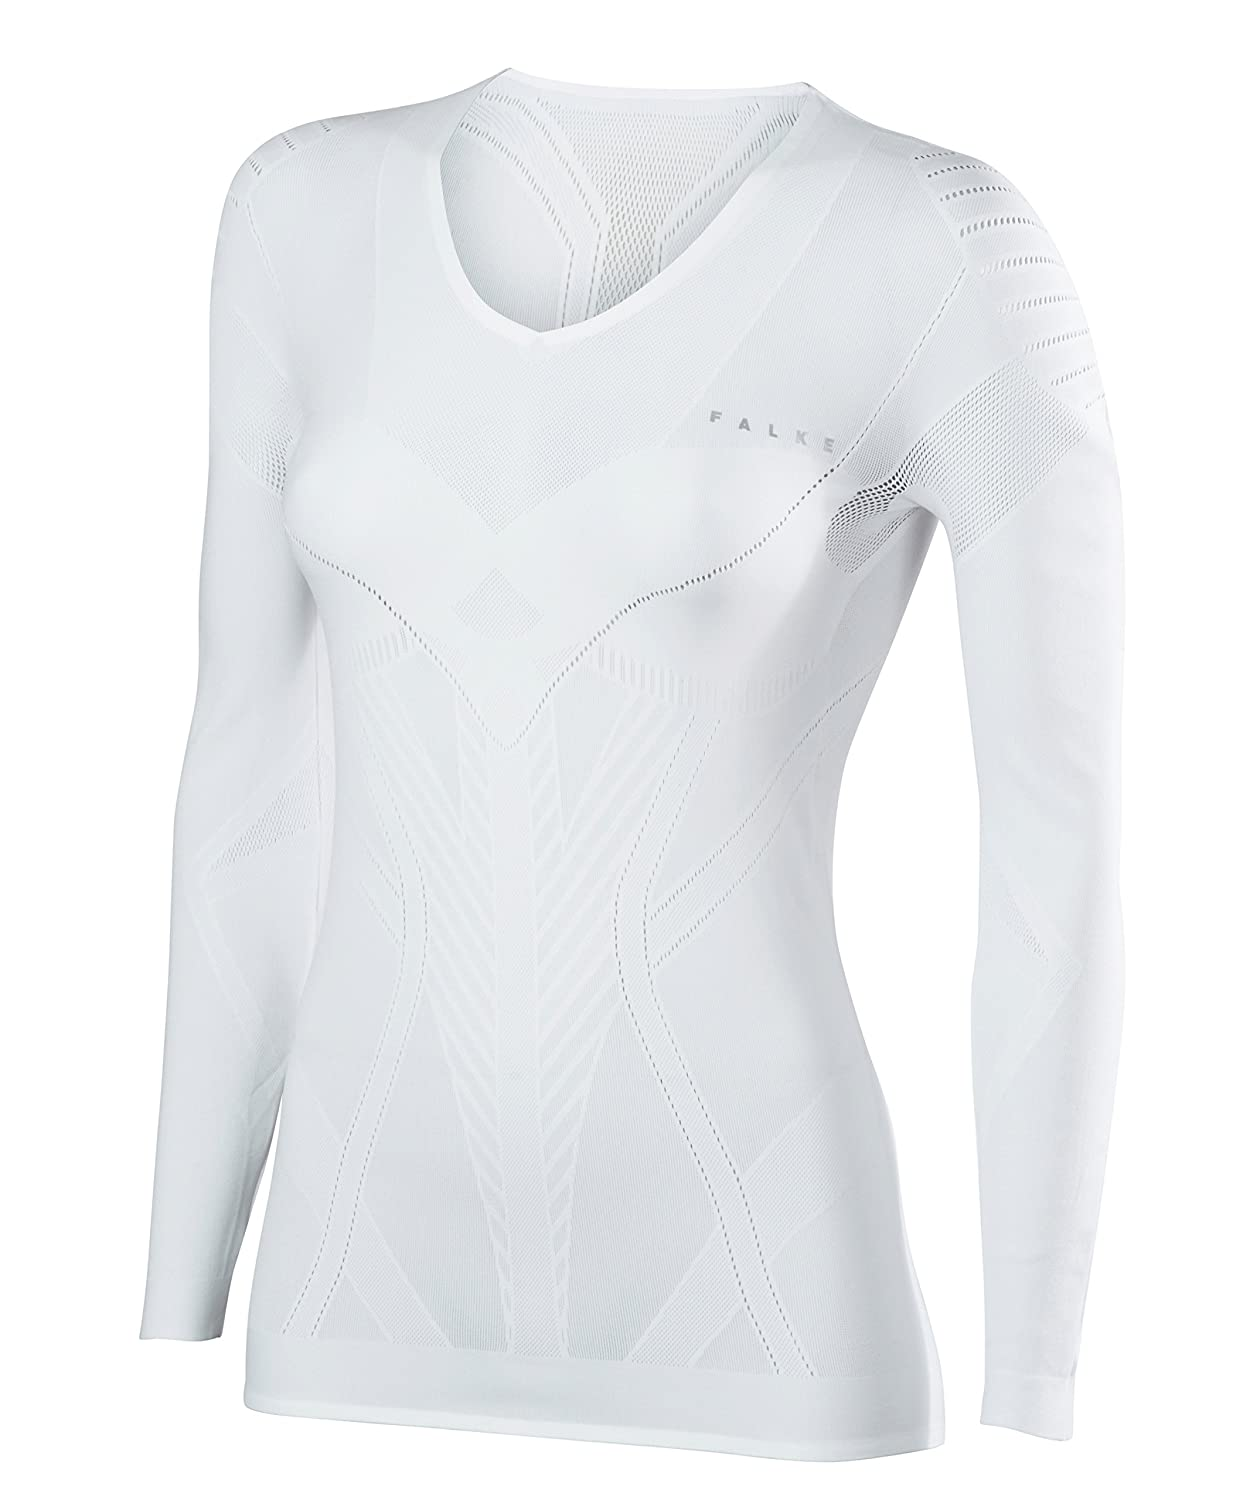 Falke Women's Cool Long Sleeved Tight Fit Sports Underwear Shirt FALAH|#FALKE 33050